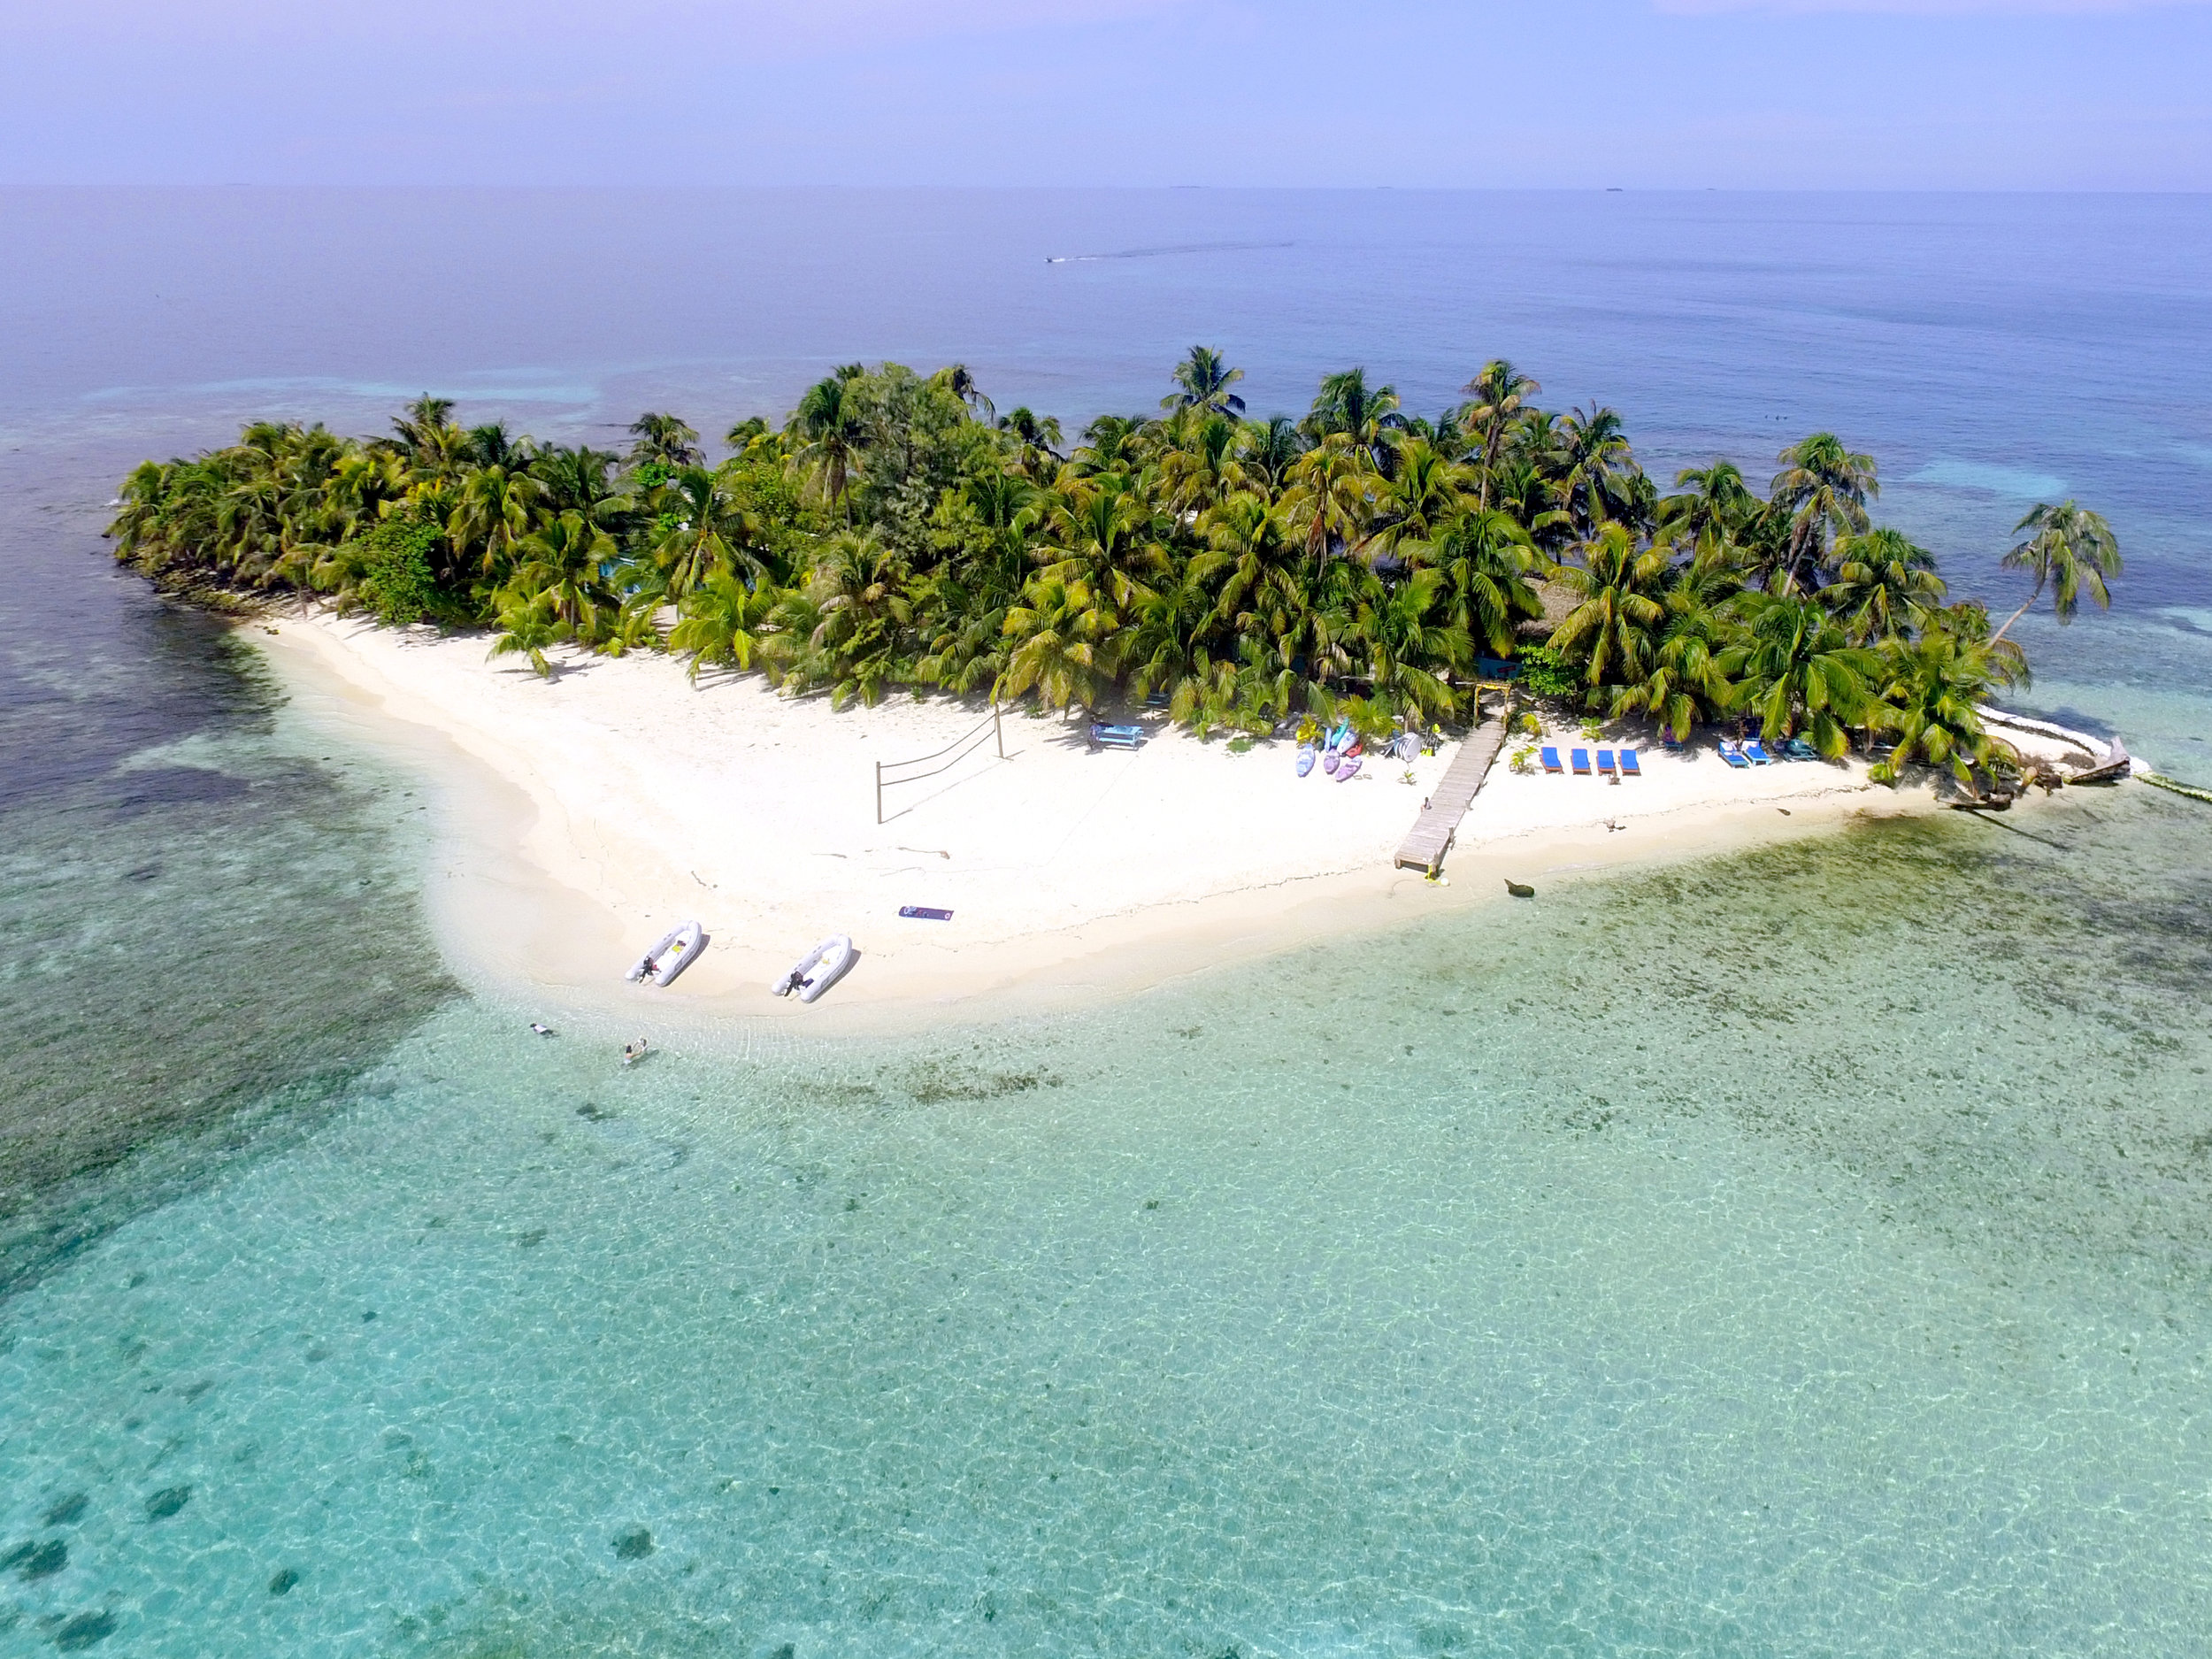 Ranguana Caye Tropical Island Experience - A 2-acre, picture-perfect private island off the coast of Placencia, Ranguana Caye is the #1 area tour on Trip Advisor. Kids can snorkel around the island, play beach games, paddleboard or kayak, and so much more. Meals are always included!